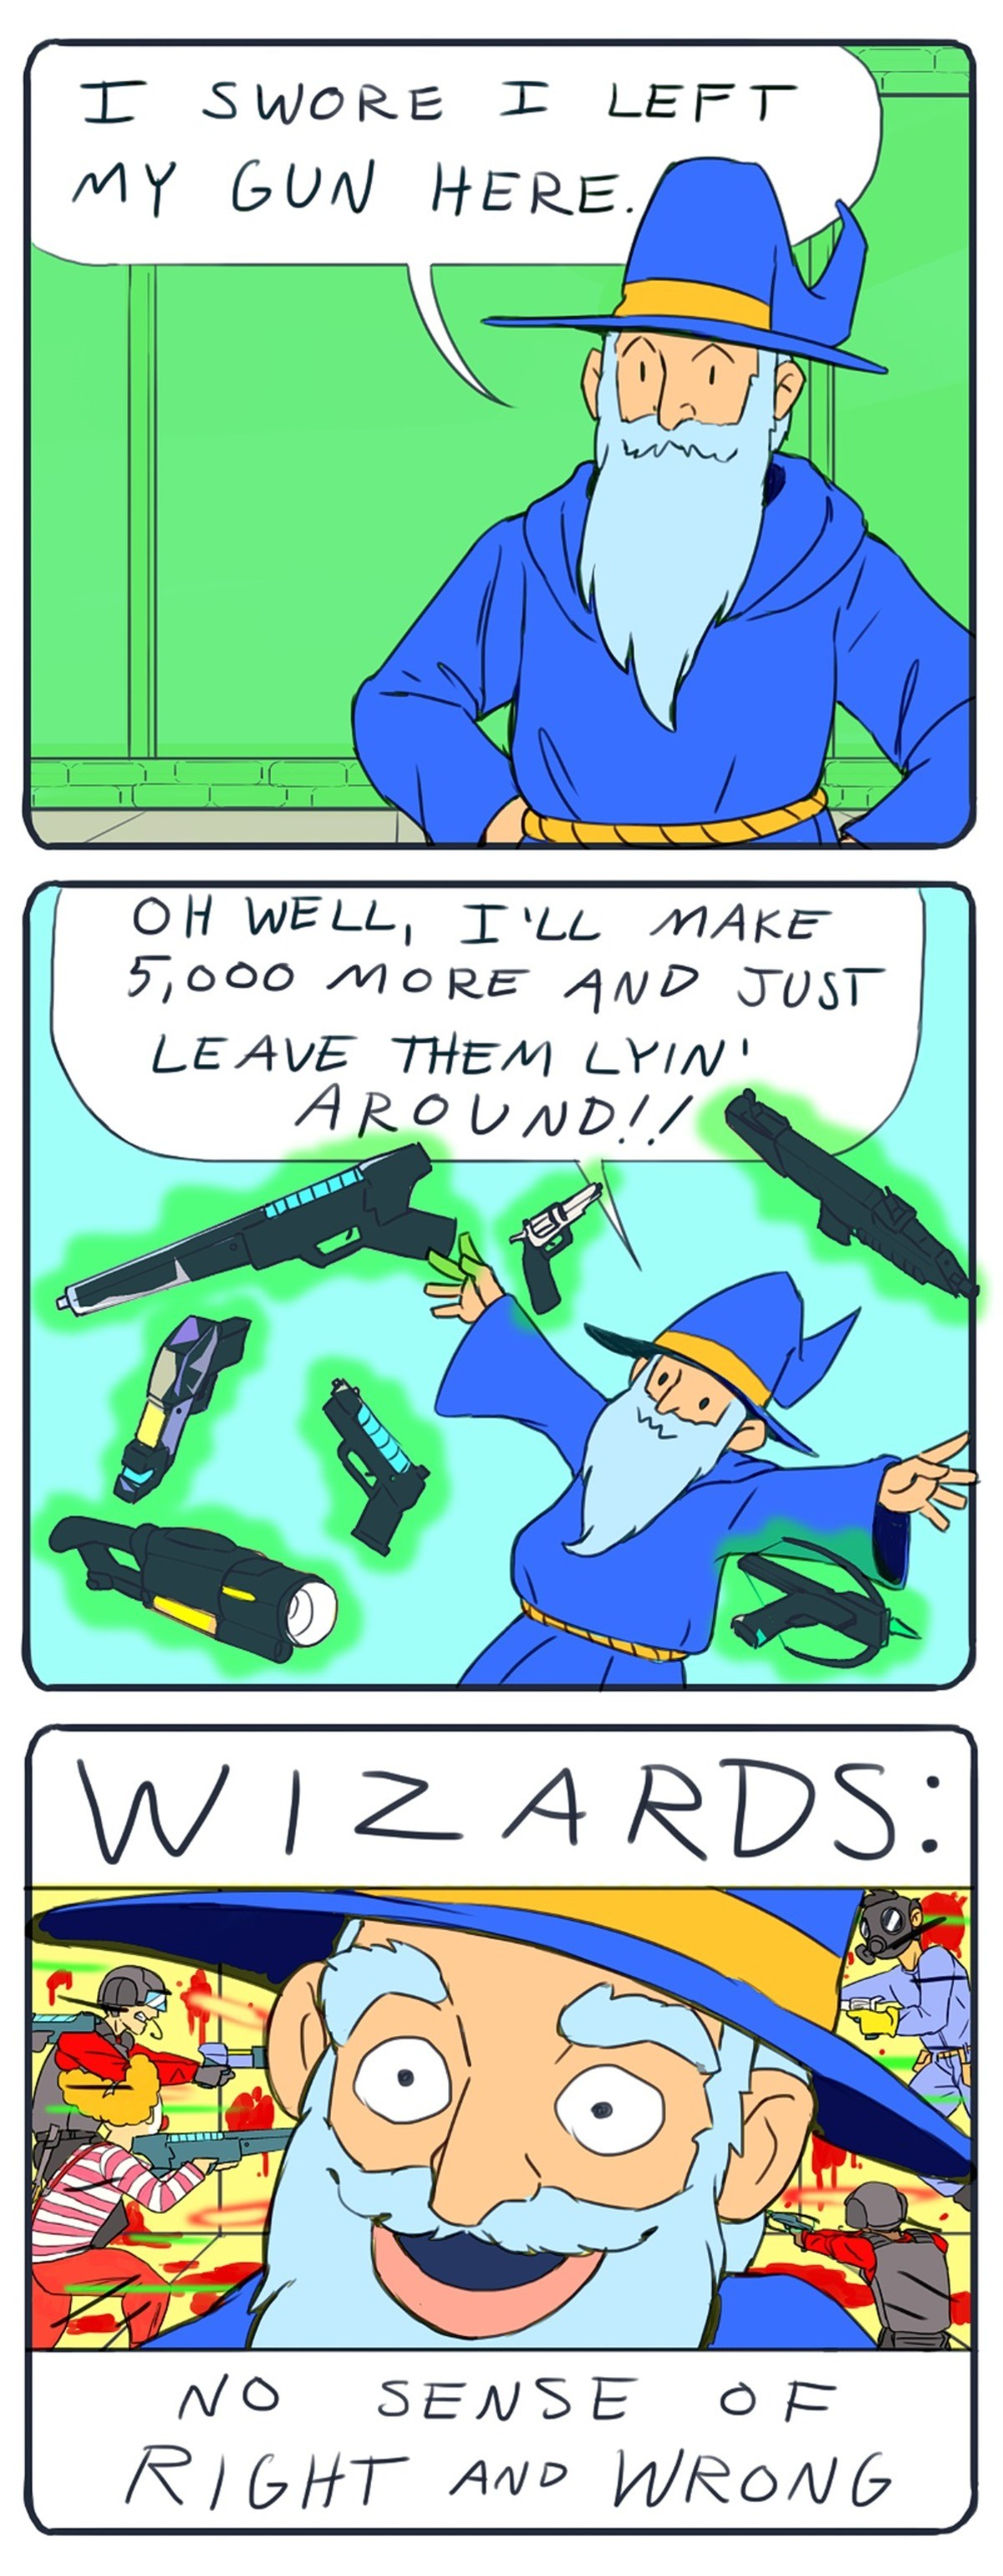 Wizards. .. This is nice and all, but why do people feel the need to recreate these short comics?